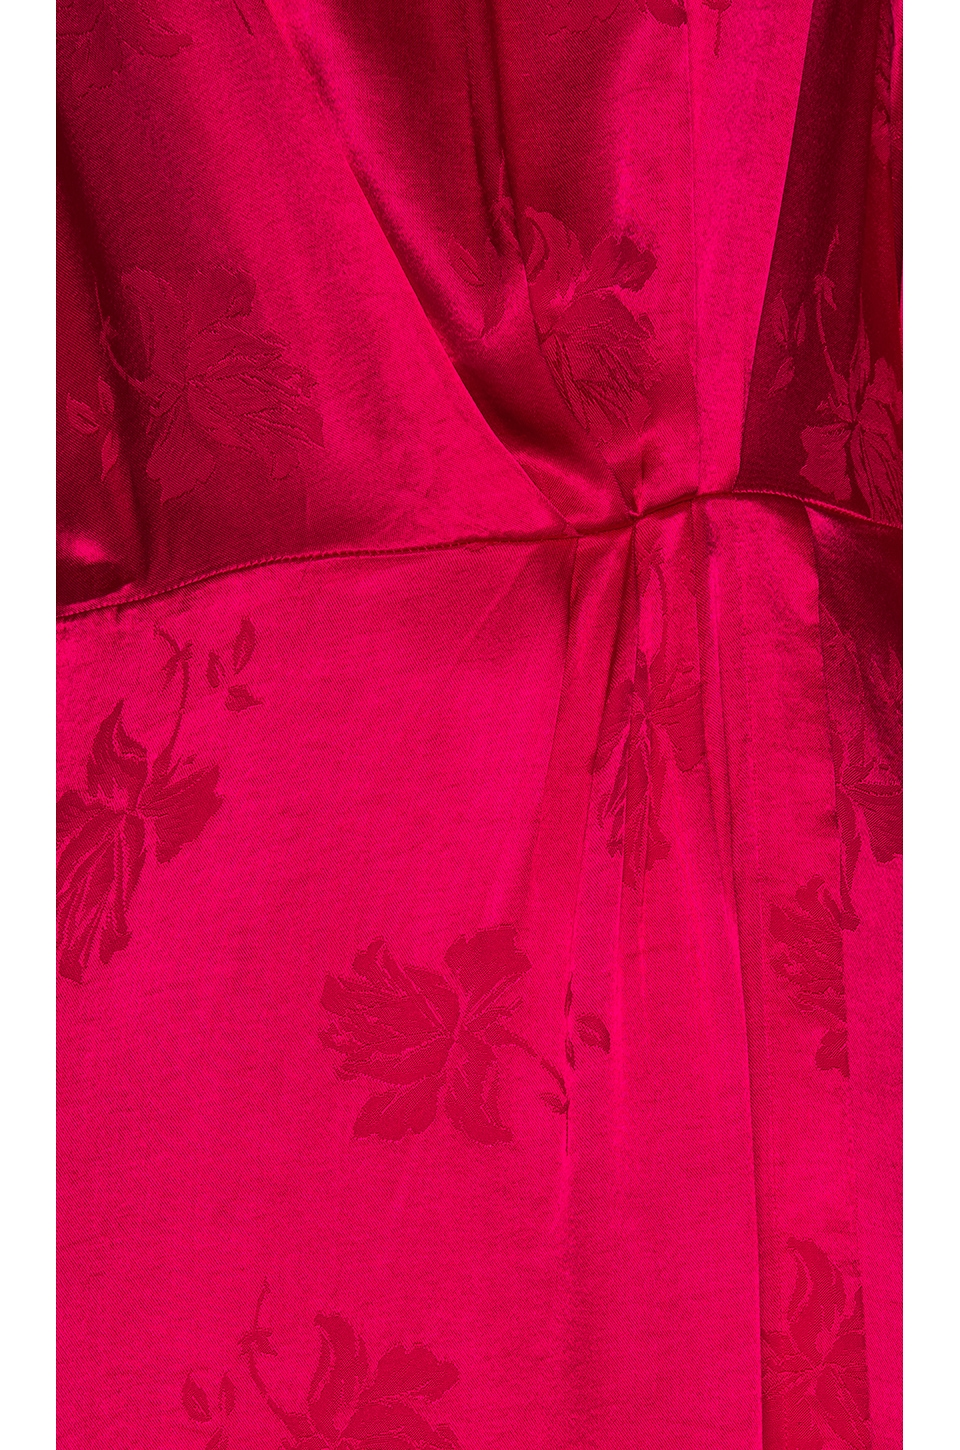 Floral Jacquard Dress, view 4, click to view large image.